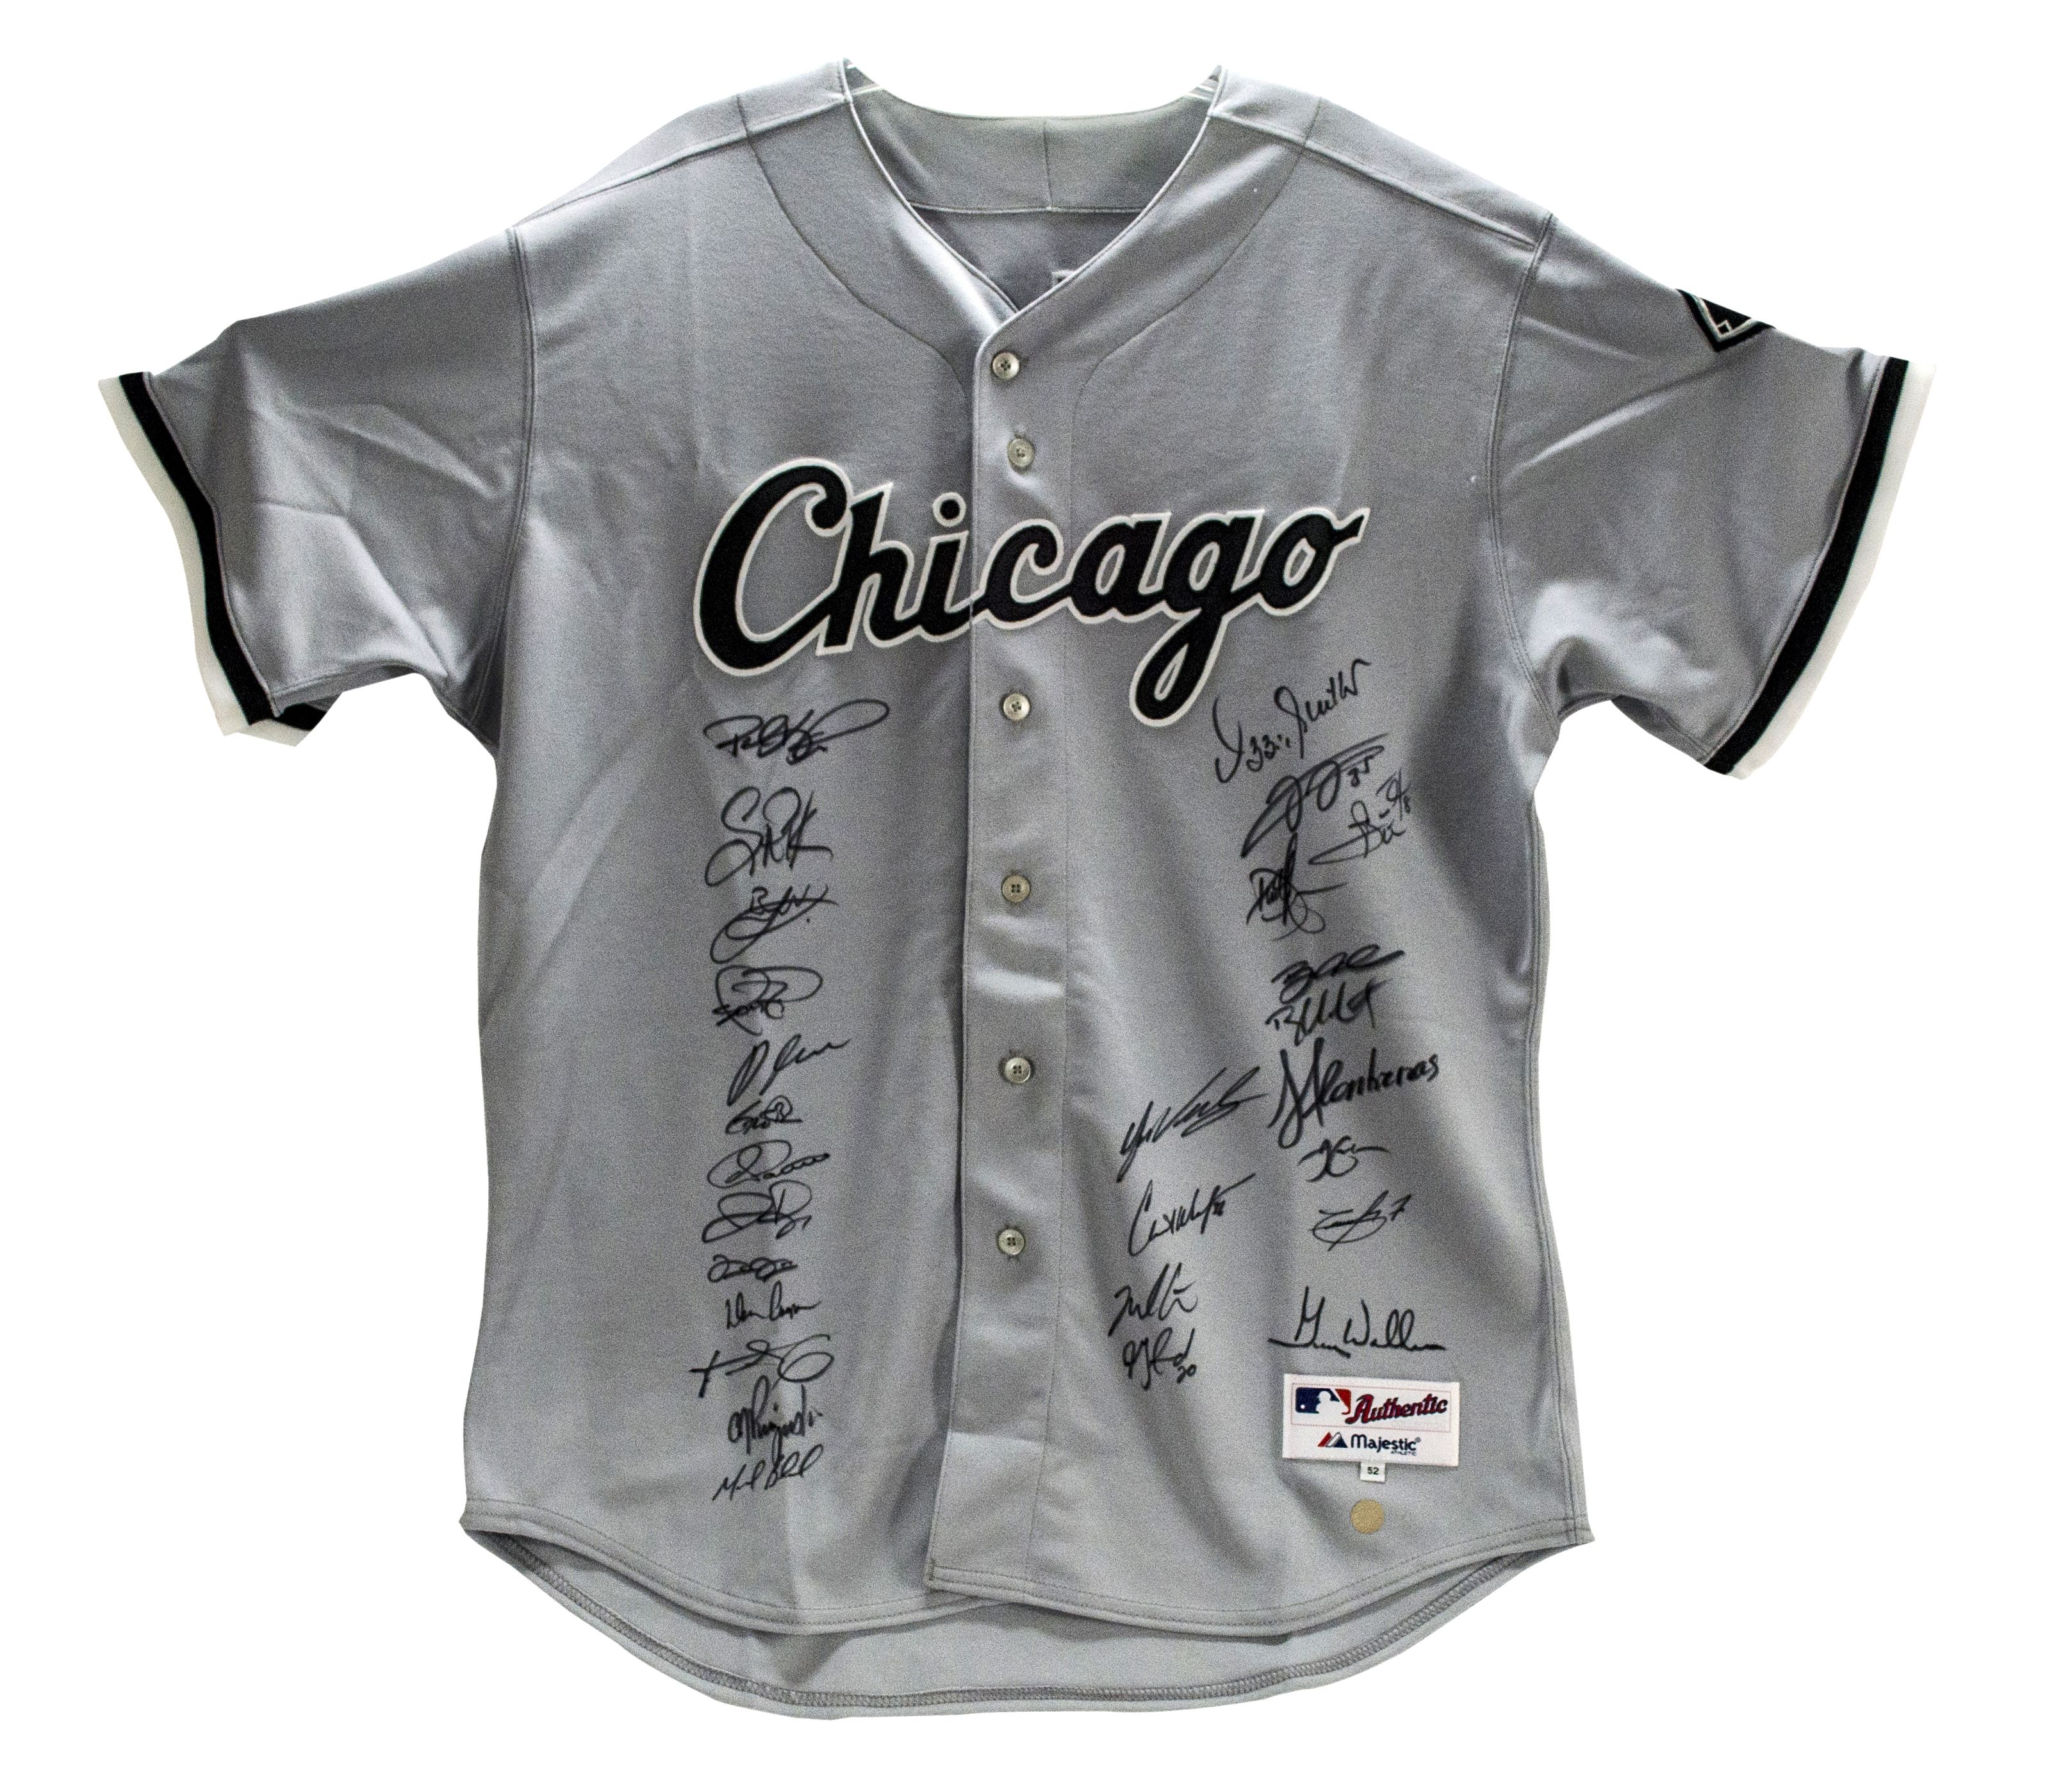 b1c0f71e06a 2005 Chicago White Sox World Series Champion Team Signed Jersey(27  Signatures)